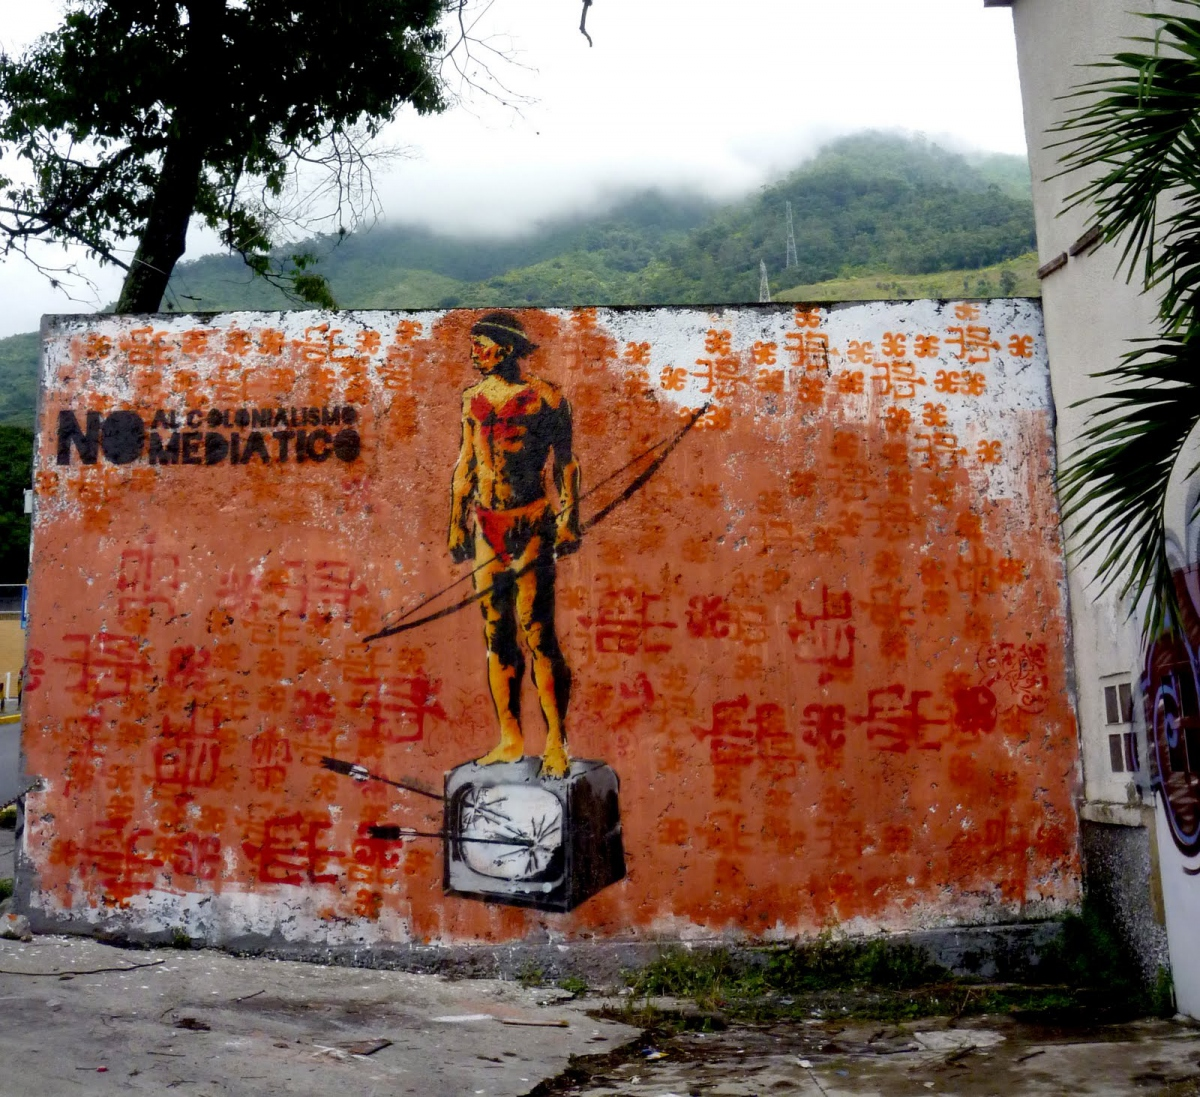 """In the struggle to resist modern-day forms of neocolonialism, including domination via thought/media, the Communicational Guerrilla produced this 10-foot high mural that reads, """"No to Media Colonialism."""""""